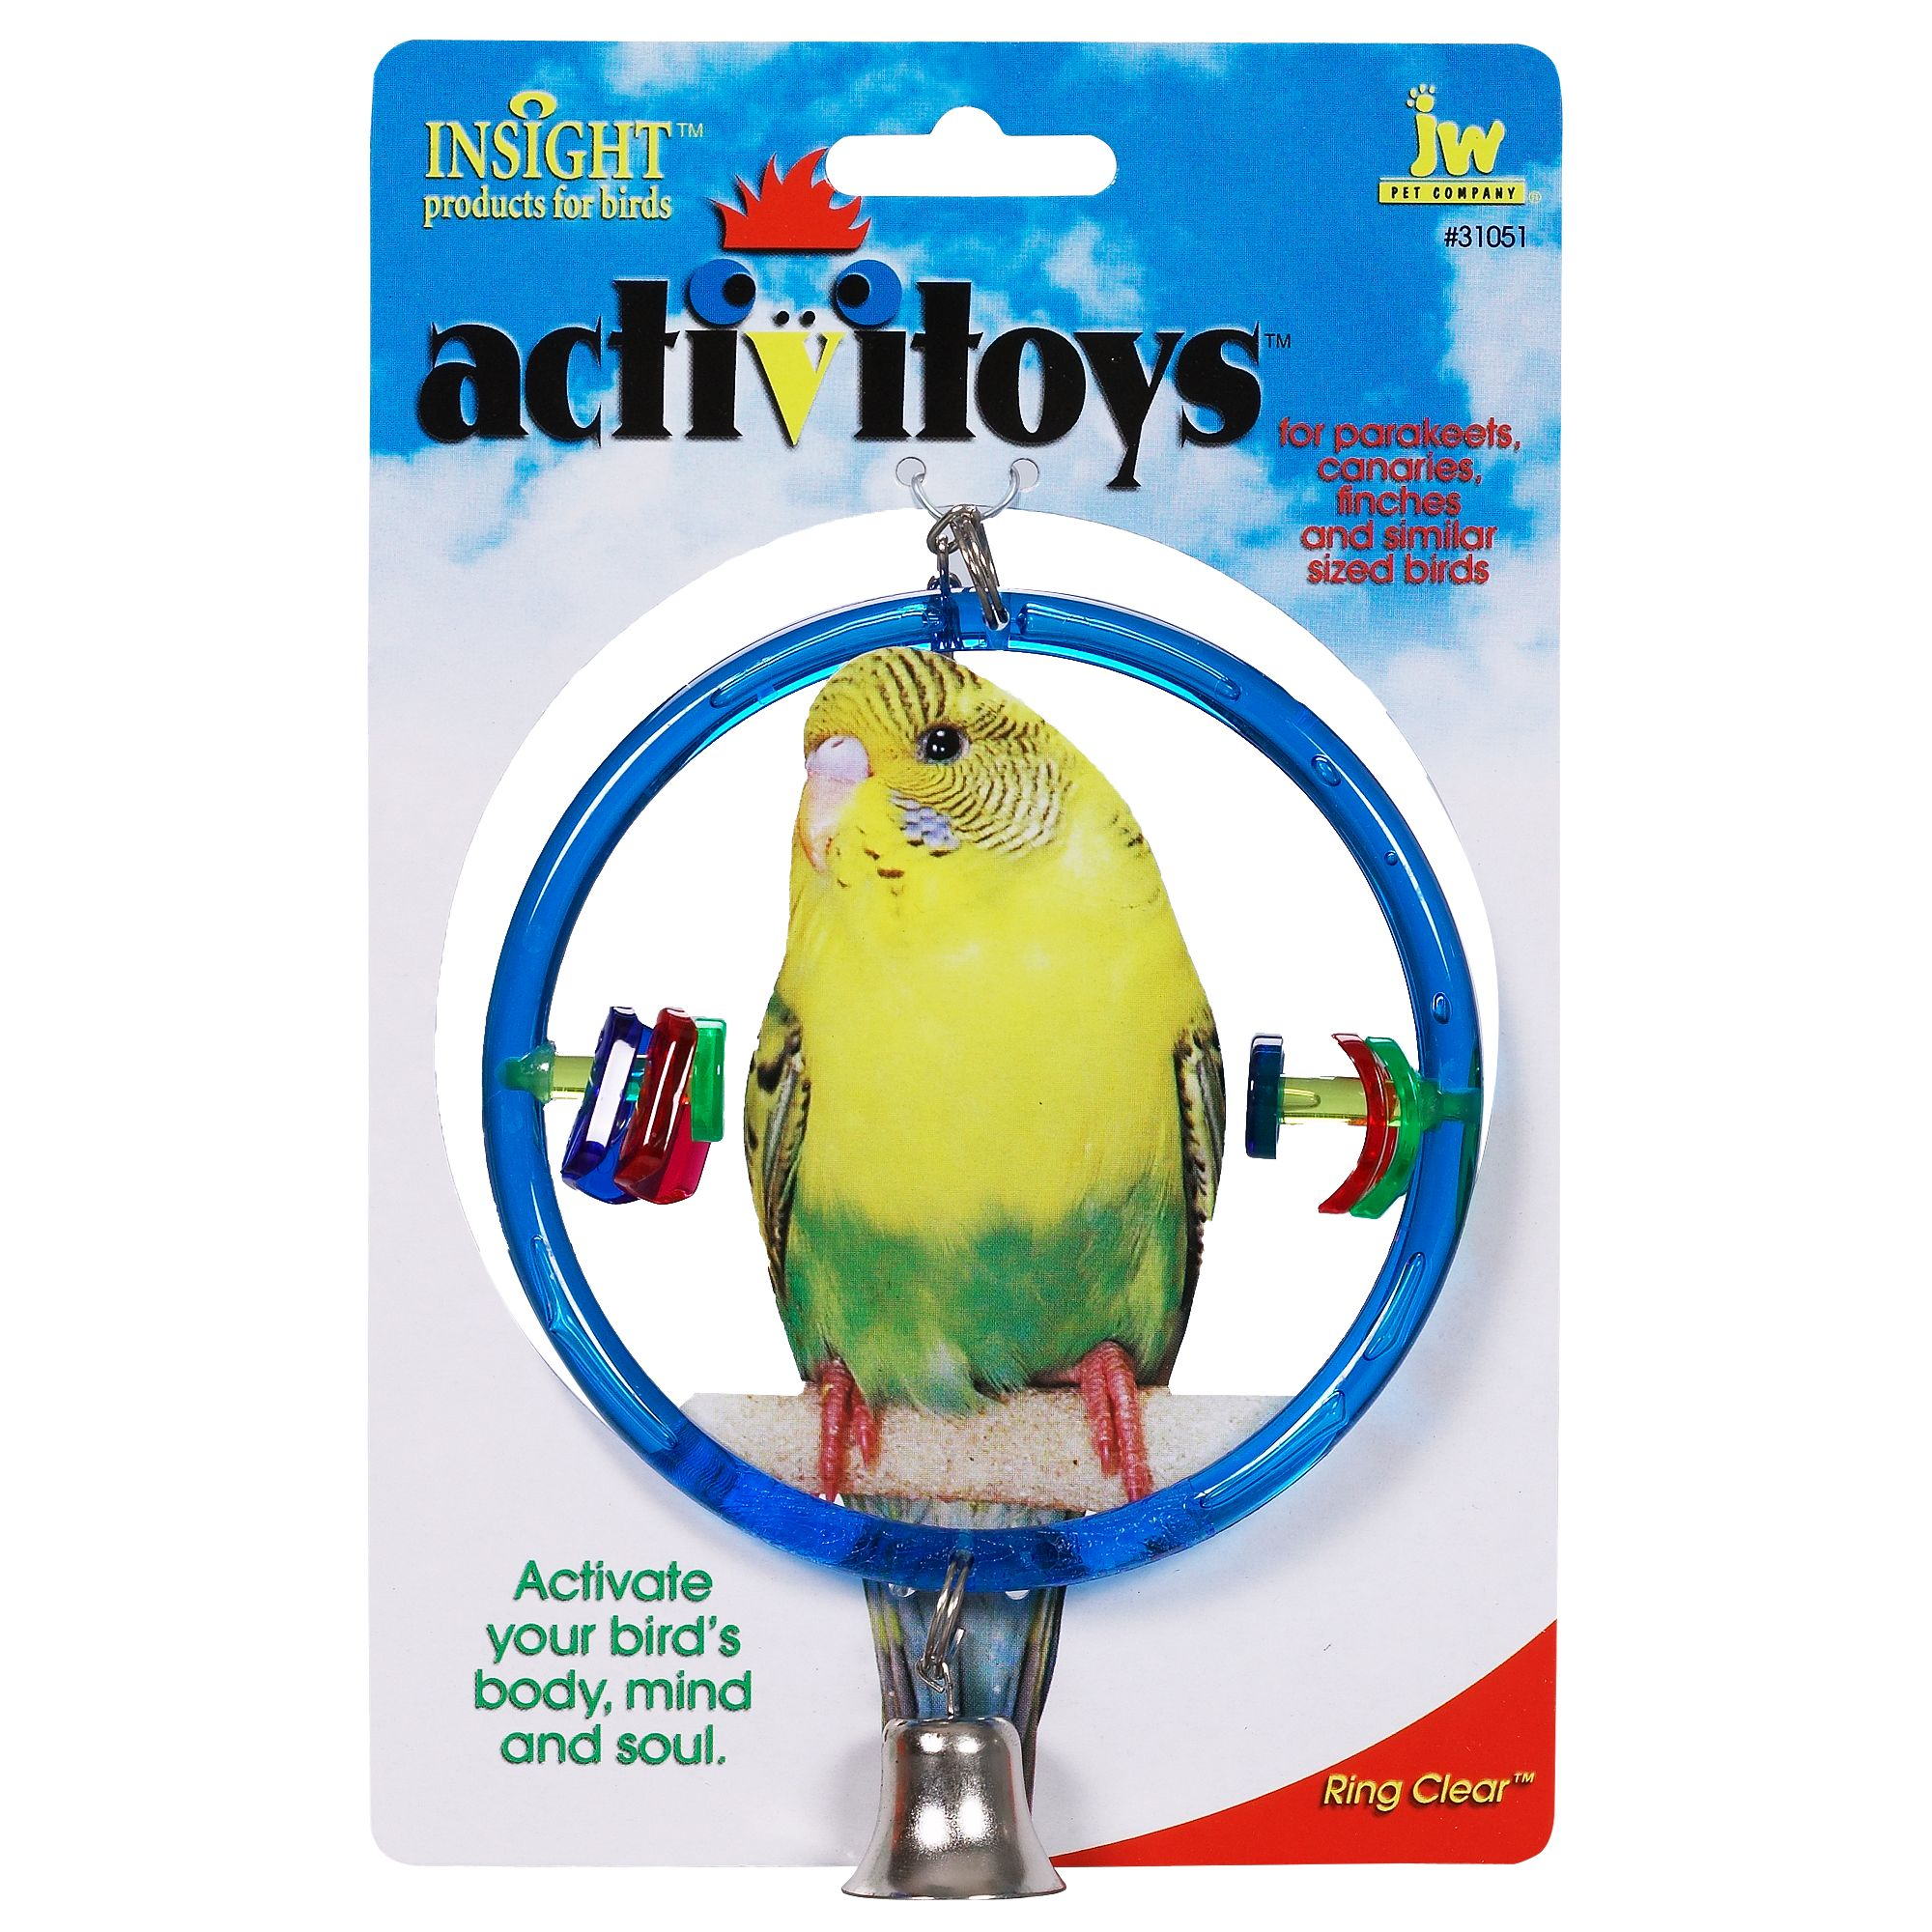 JW Pet Insight Activitoys Ring Clear Bird Toy 5083903